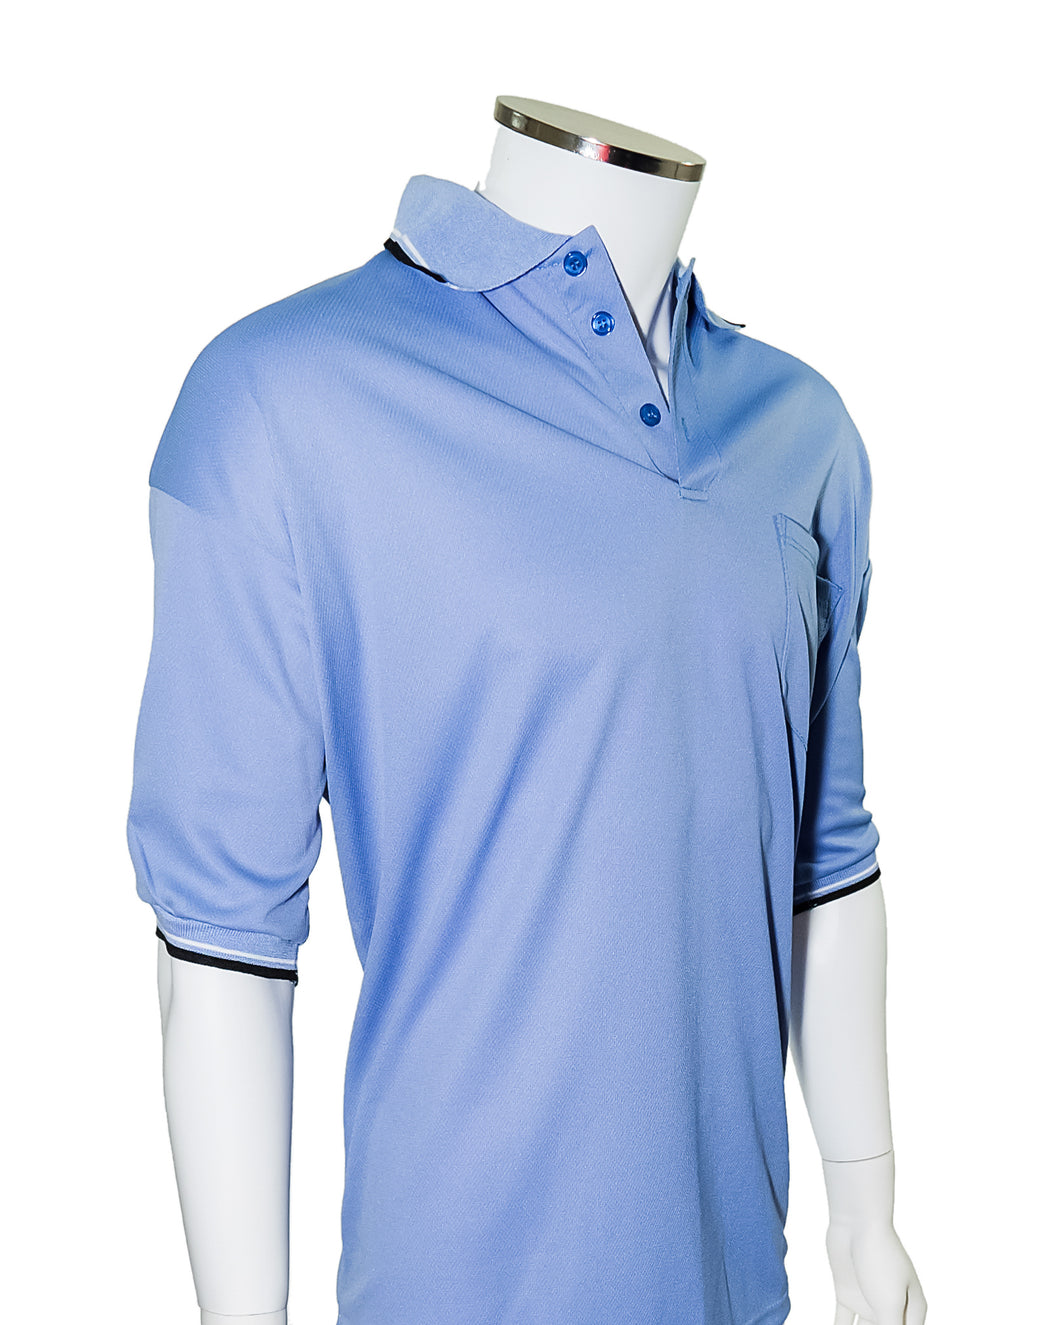 Major League Umpire Shirt - Powder Blue - Officials Depot